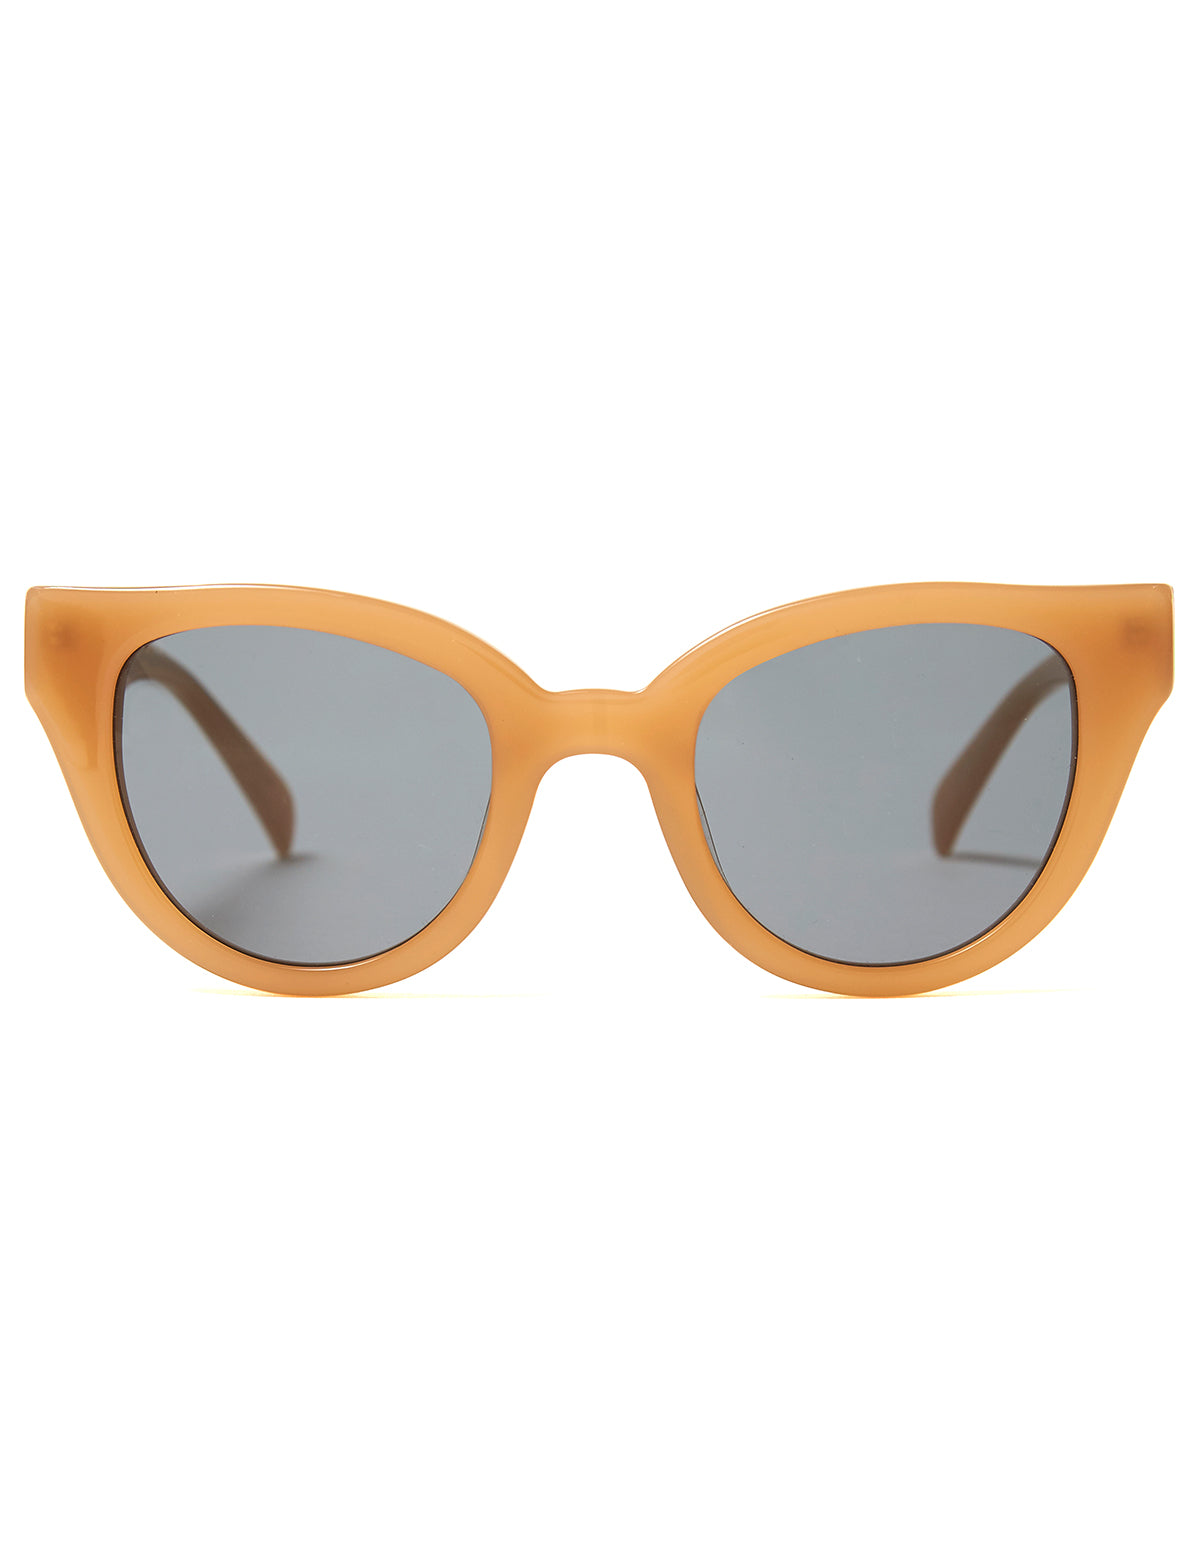 Carla Colour Barton Sunglasses Sap